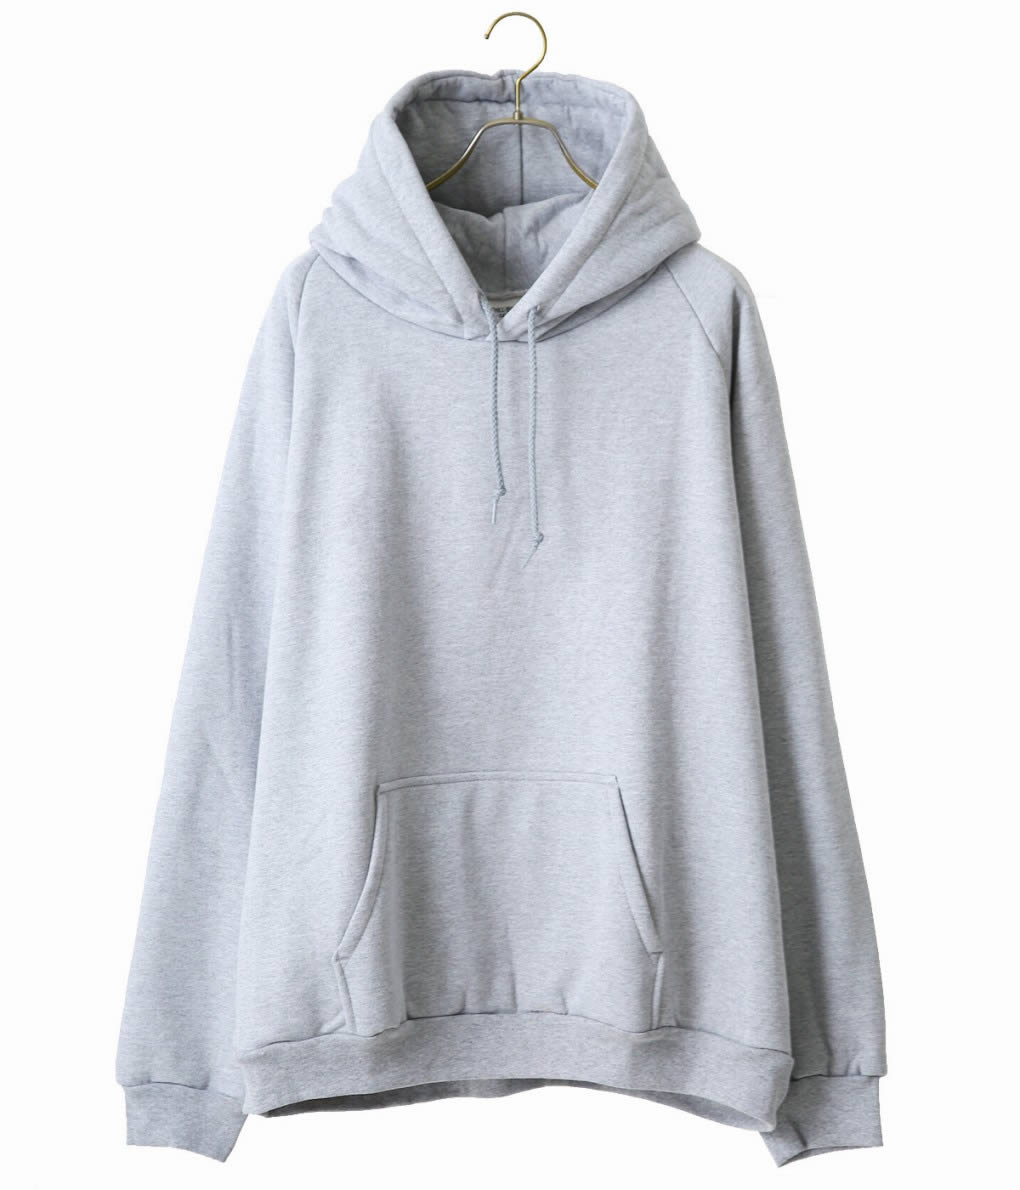 CAMBER / キャンバー : THERMAL LINED PULLOVER HOODED (XXLサイズ) / 全2色 : キャンバー サーマル プルオーバー フーデッド パーカー : CAMBER-532-2XL 【AST】